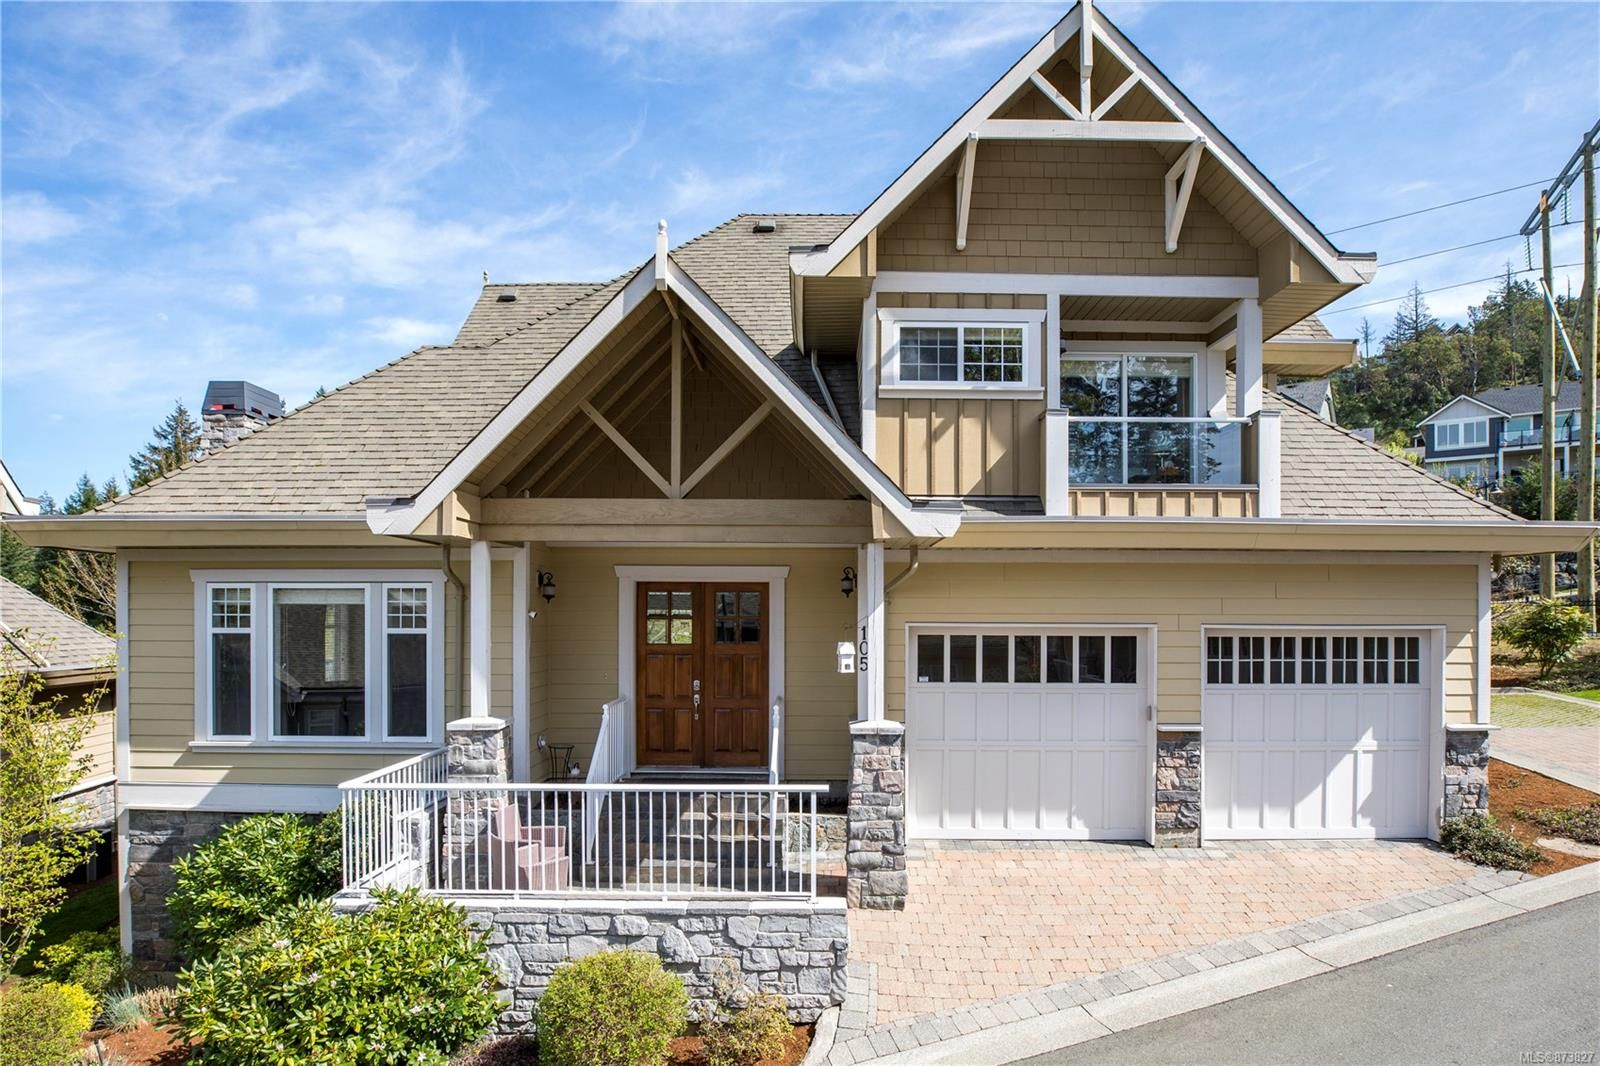 Main Photo: 105 2060 Troon Crt in : La Bear Mountain House for sale (Langford)  : MLS®# 873827